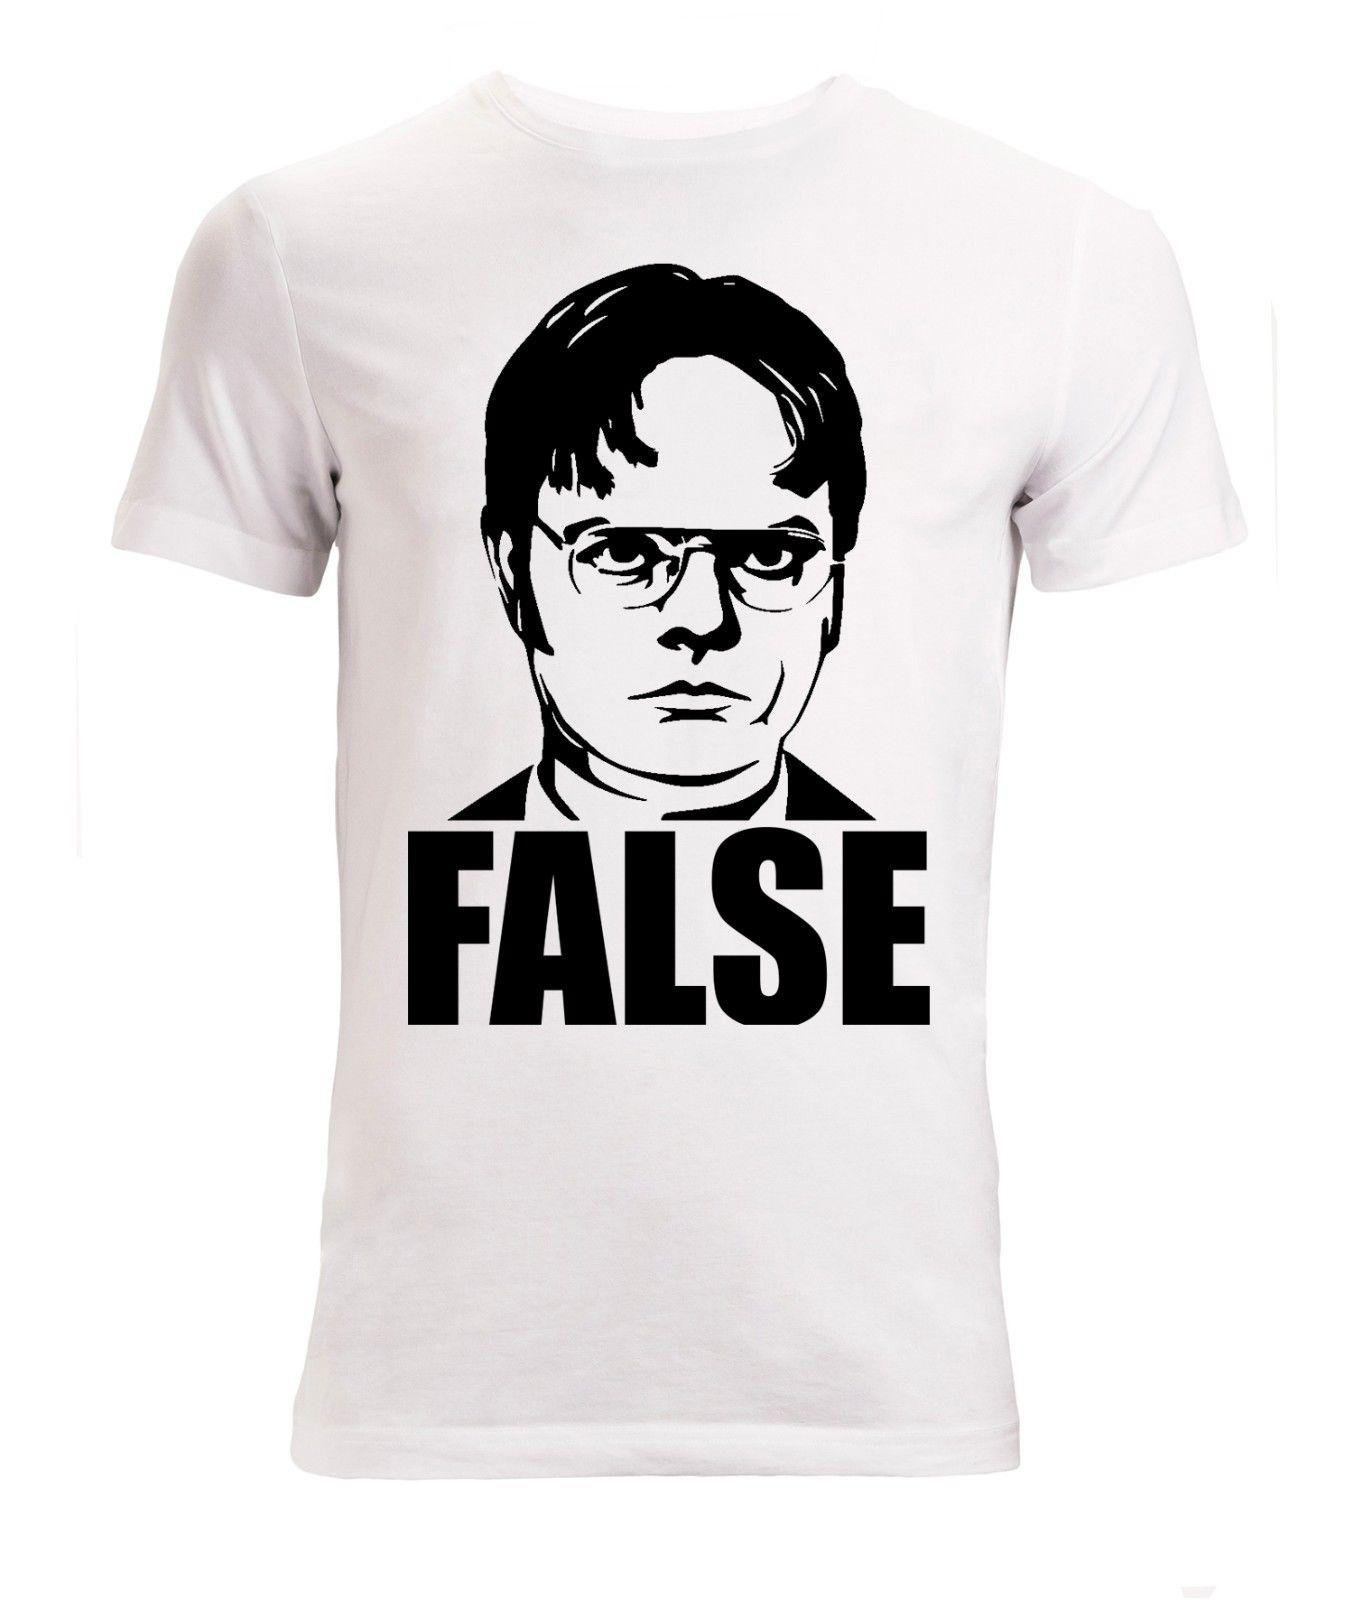 ef414c428 The Office Dwight False Men's ( ) T Shirt White Top Quality Lol Short  Sleeves Cotton T-shirt Men Short Sleeve Tee